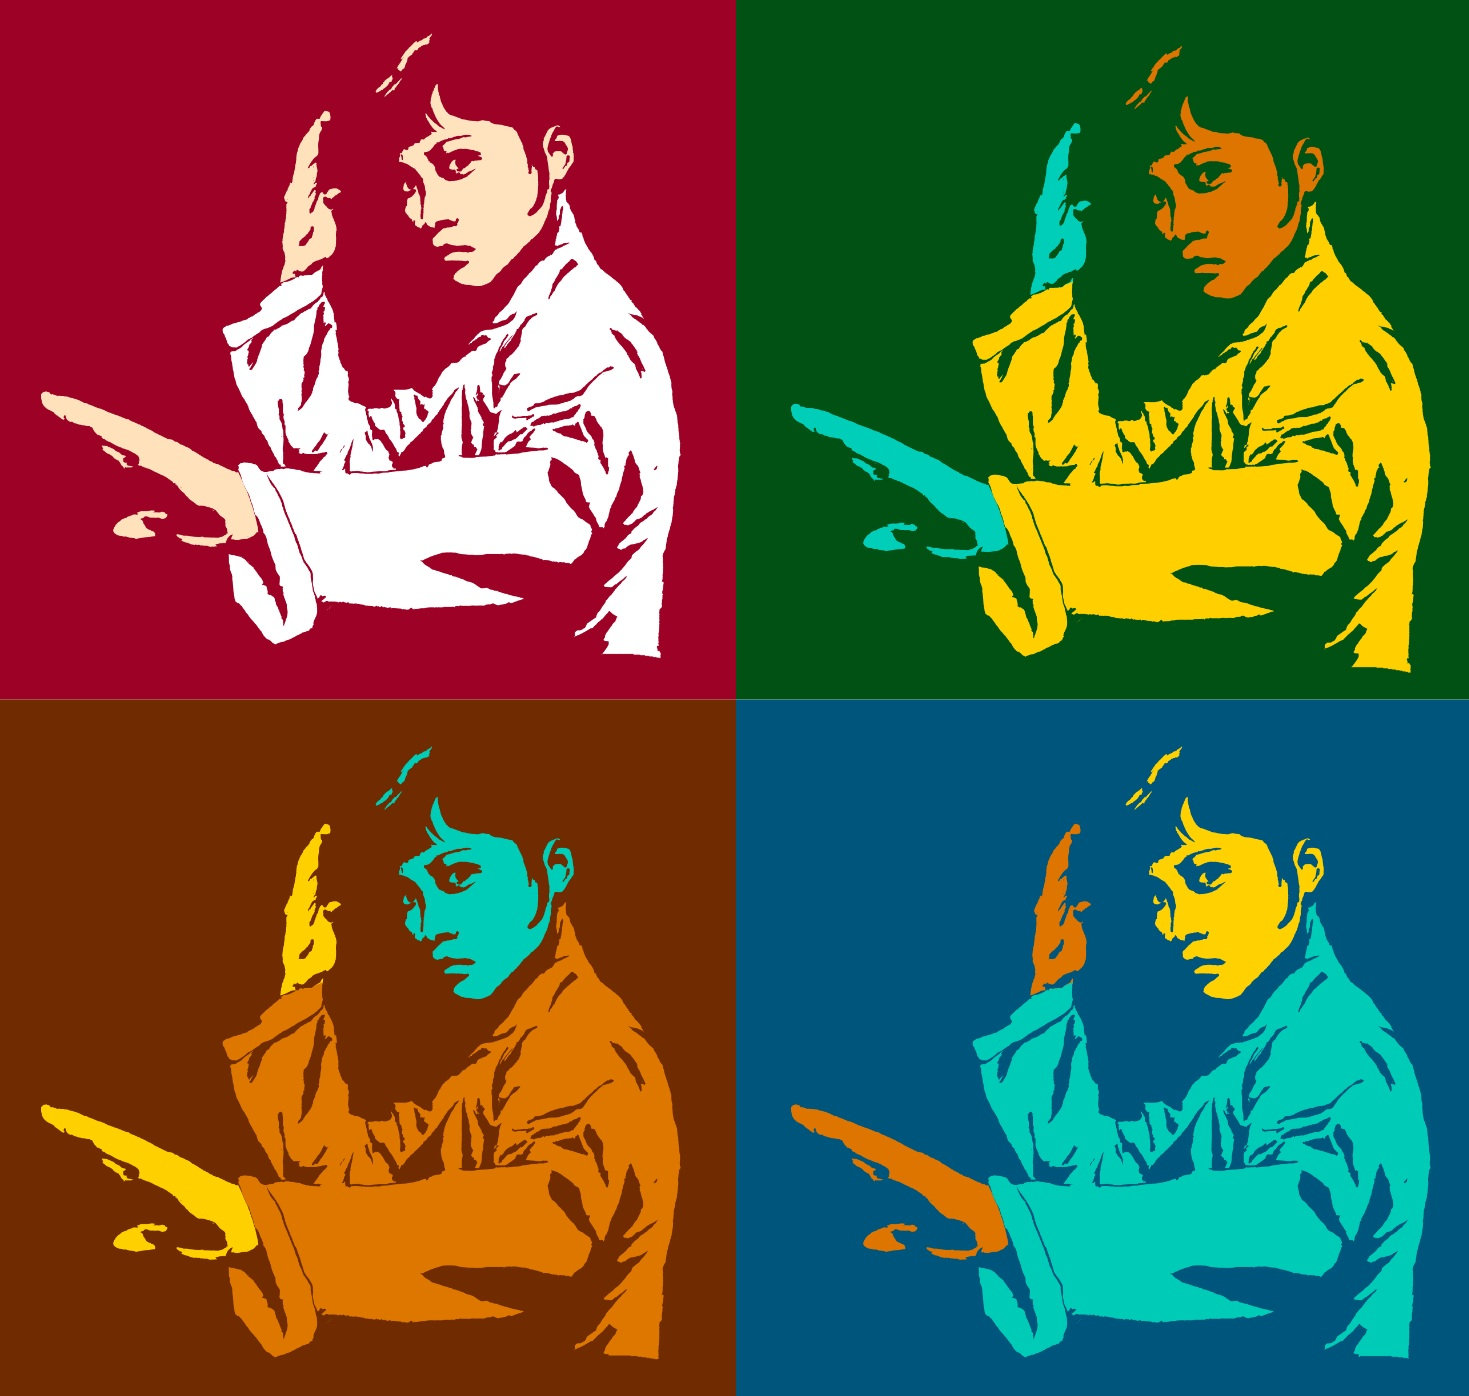 Kung Fu Woman Andy Warhol Design